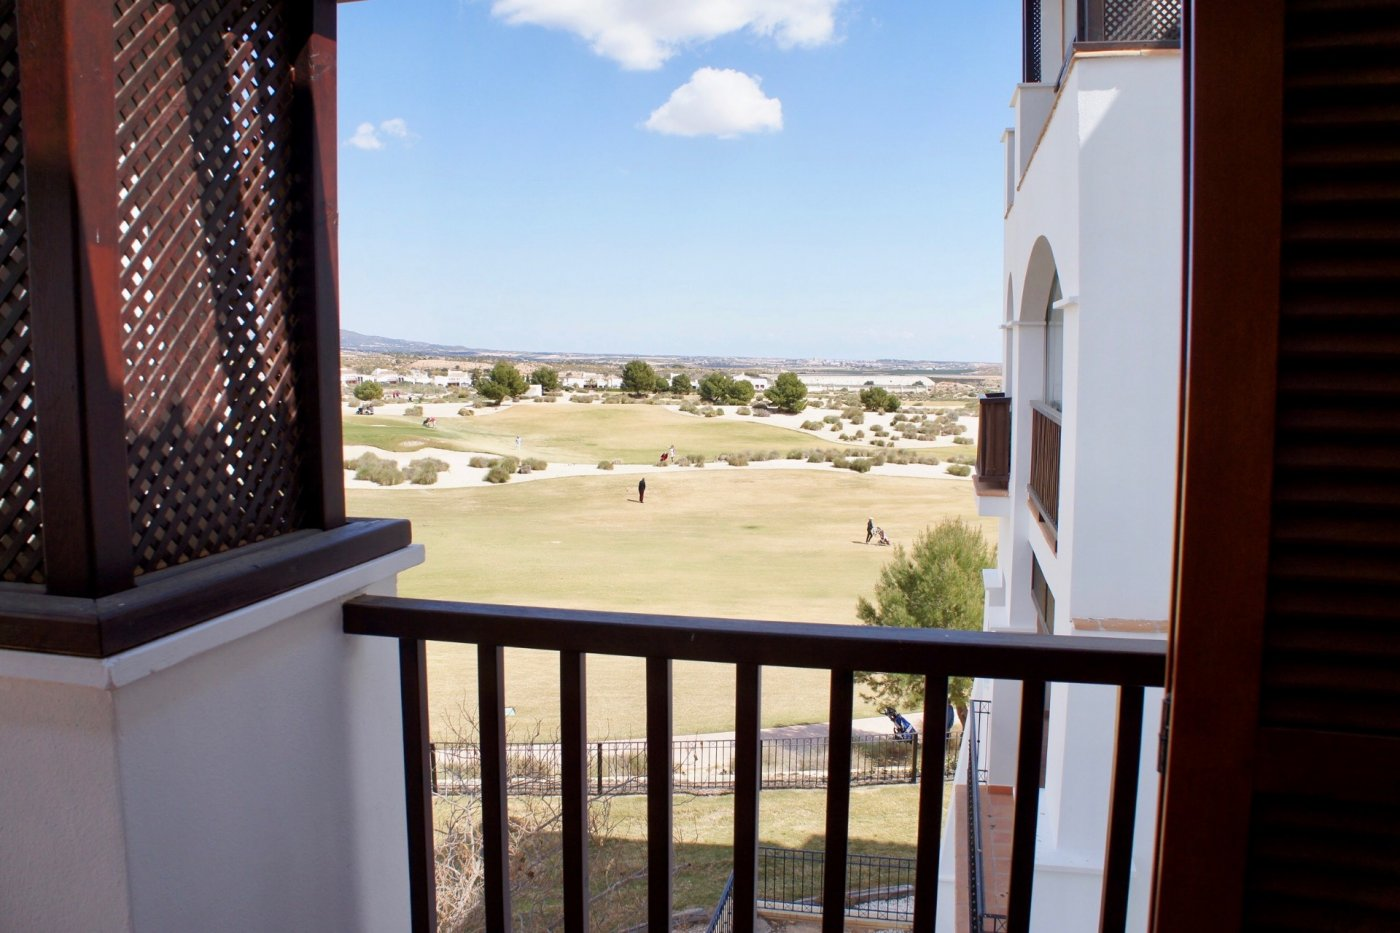 Image 3 Apartment ref 3265-02805 for sale in El Valle Golf Resort Spain - Quality Homes Costa Cálida